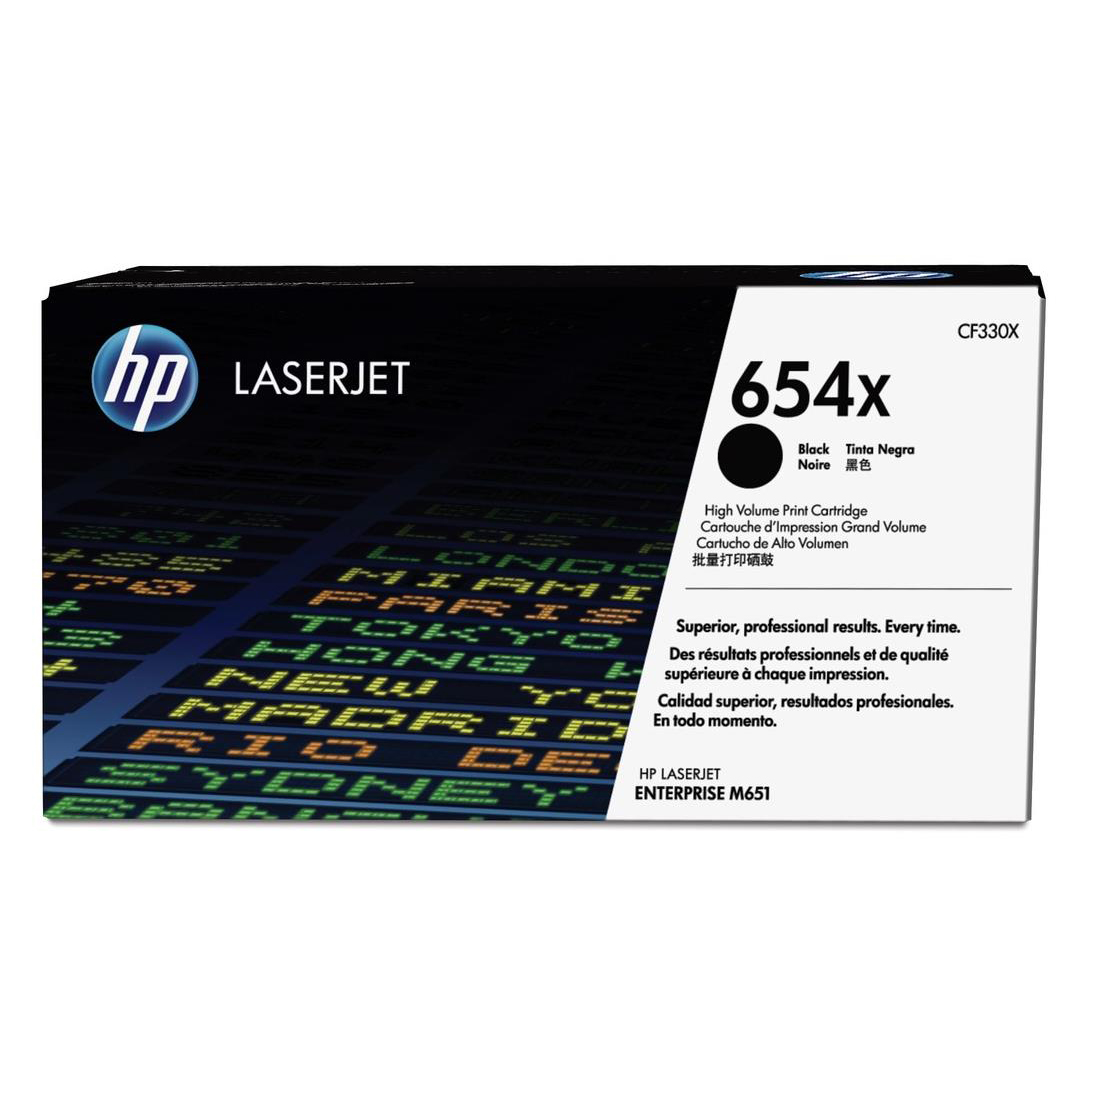 HP 654X Laser Toner Cartridge High Yield Page Life 20500pp Black Ref CF330X 3to5 Day Leadtime